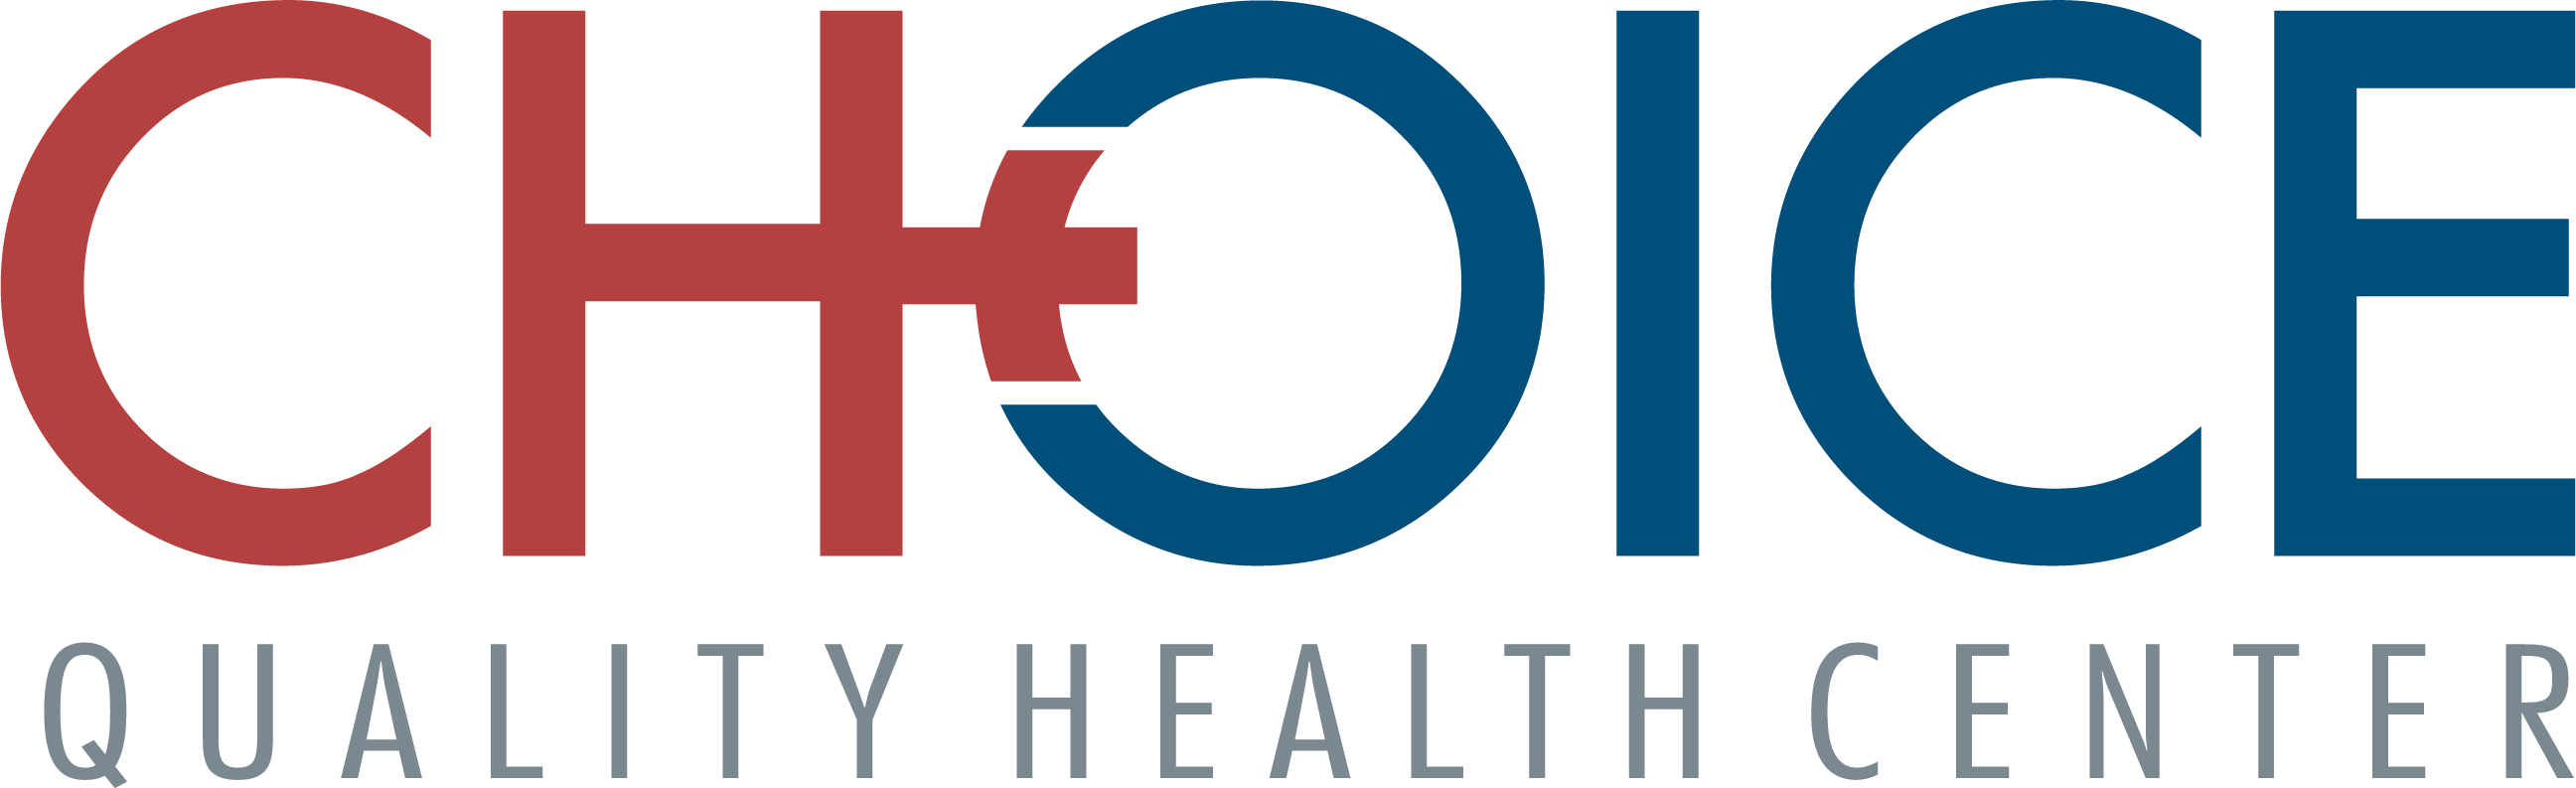 CHOICE QUALITY HEALTH CENTER